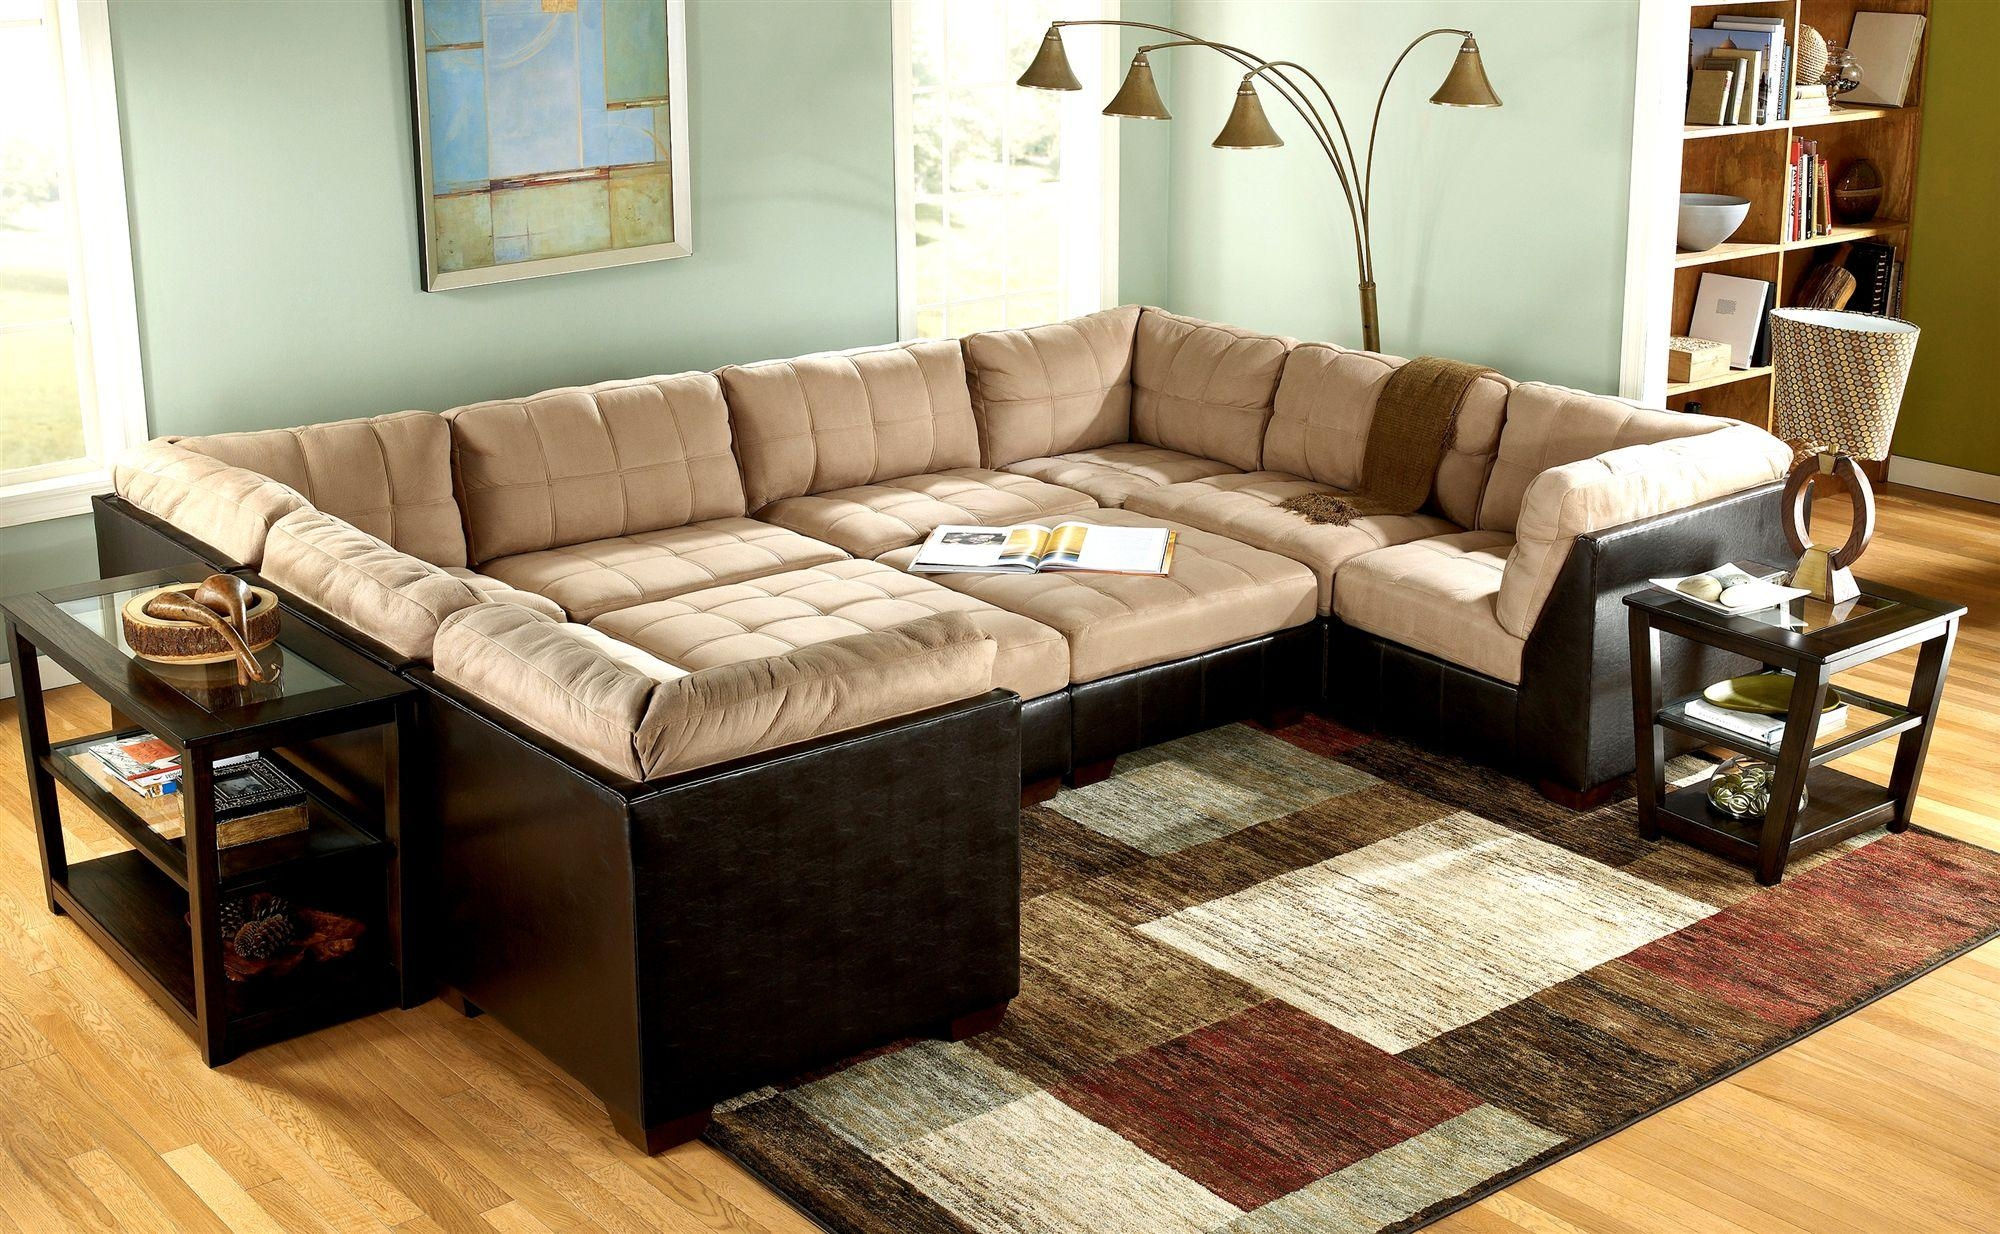 Amazing Pit Group Sofa 86 On Sofas And Couches Ideas With Pit With Pit Sofas (View 3 of 20)